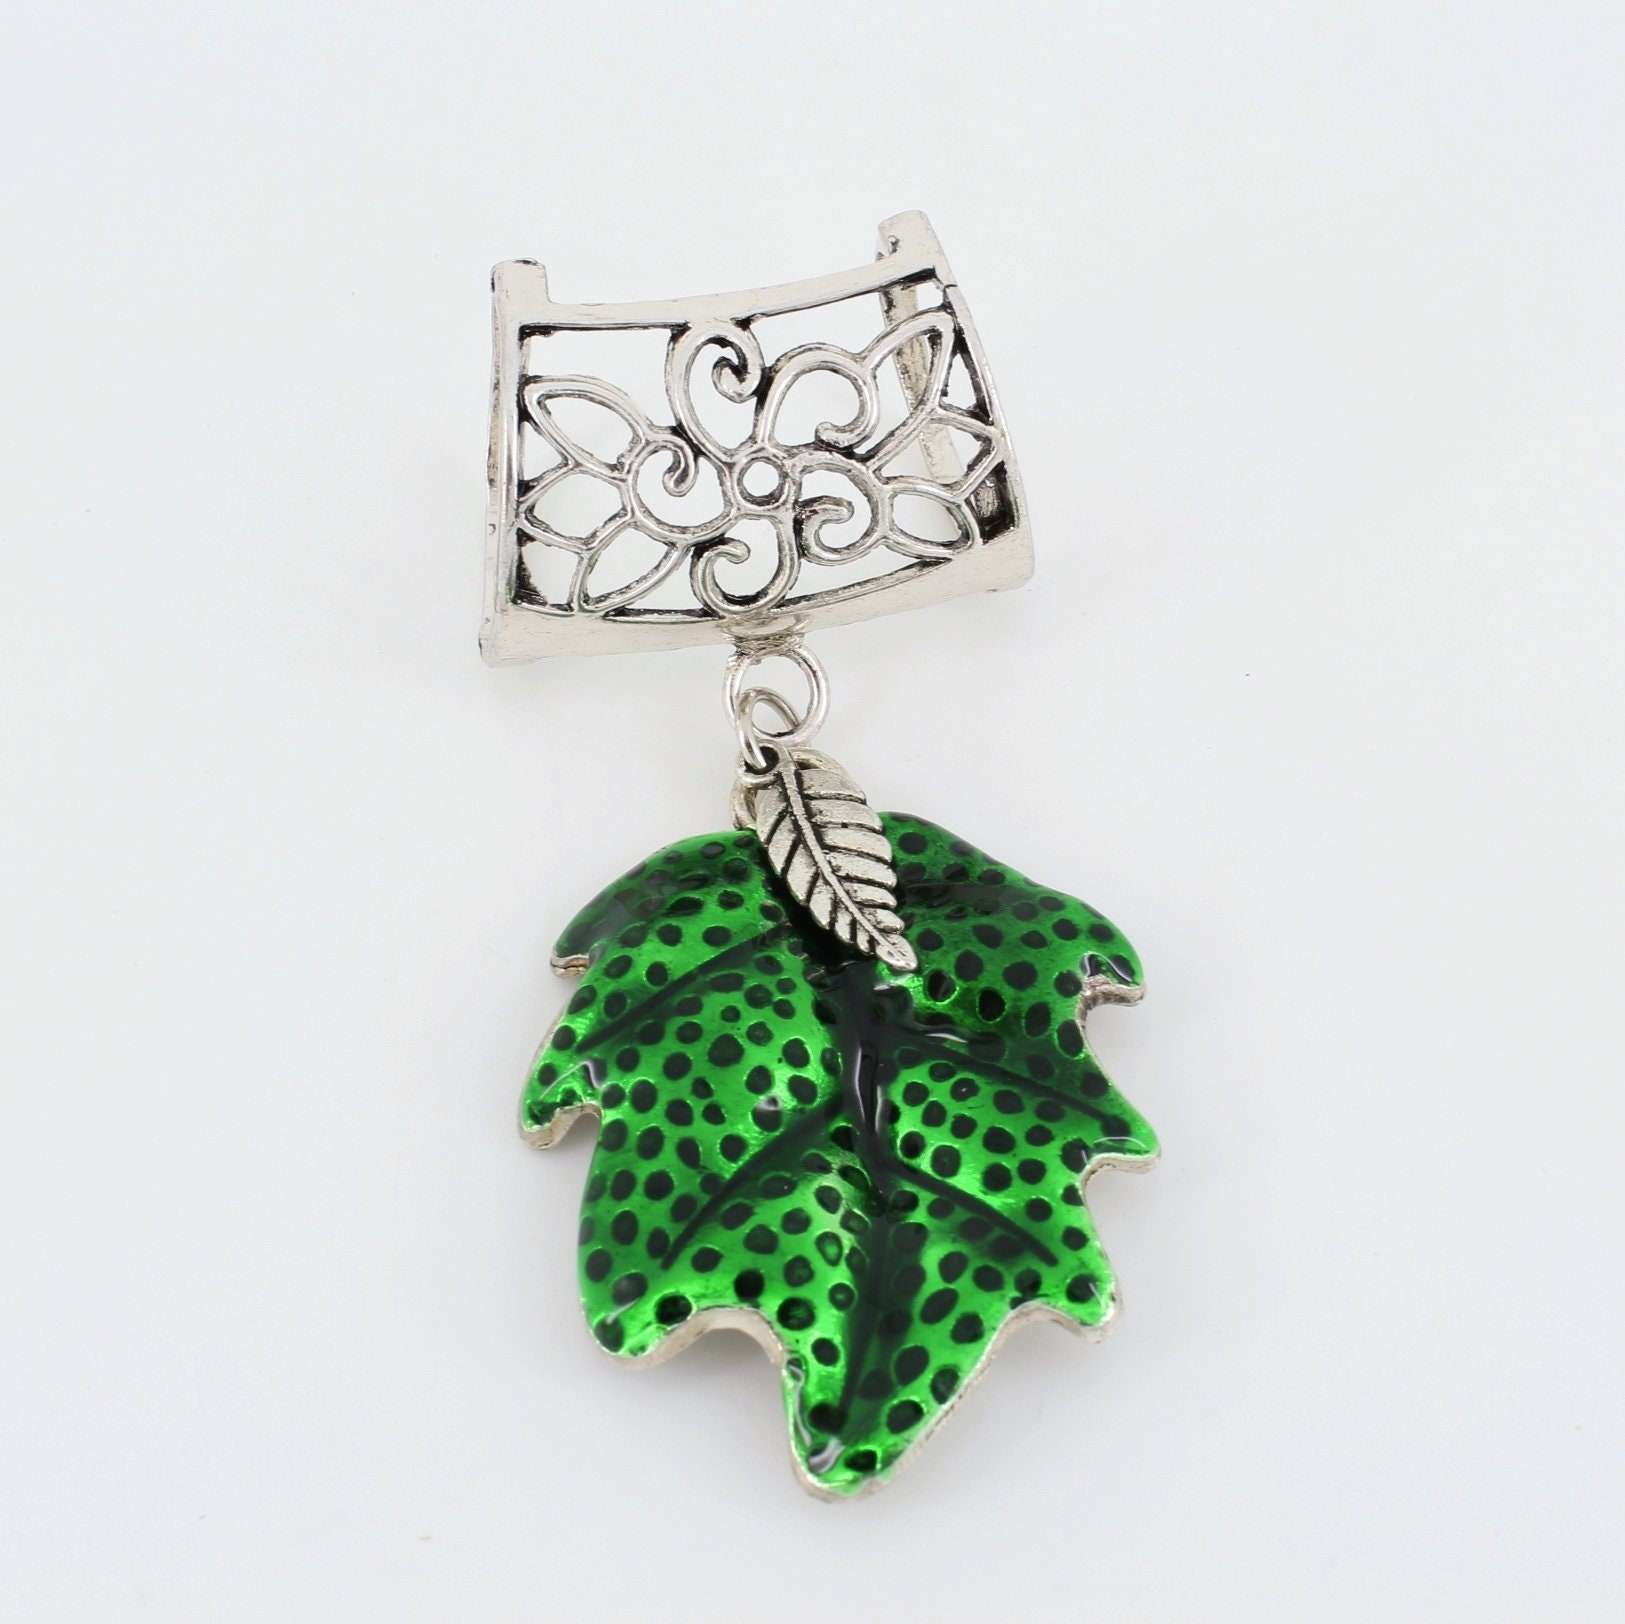 Green,Enameled,Leaf,Scarf,Pendant,~,Accessory~,Charm,Slide,Accessories,scarf_charm,scarf_accessory,scarf_pendant,scarf_jewelry,scarf_slide,scarf_bling,Green_scarf_slide,Green_Leaf_slide,Enameled_Leaf,Plant_jewelry,Silver alloy slide,Green enameled leaf,leaf charm,findings